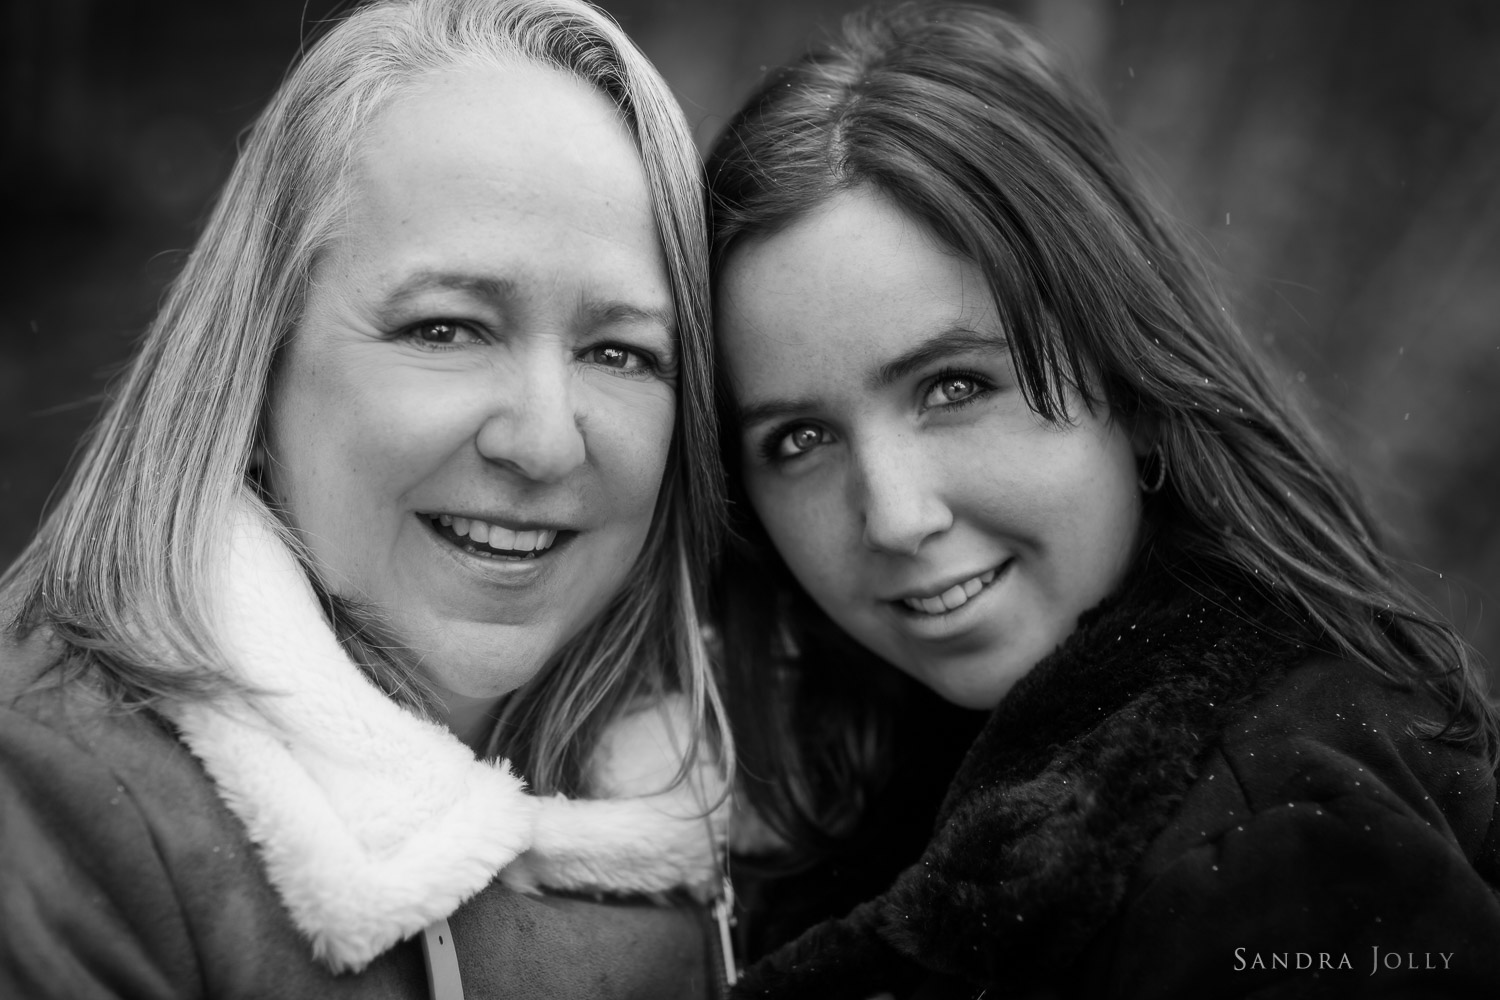 Mom-and-daughter-portrait-by-Sandra-Jolly-familjefotografering.jpg